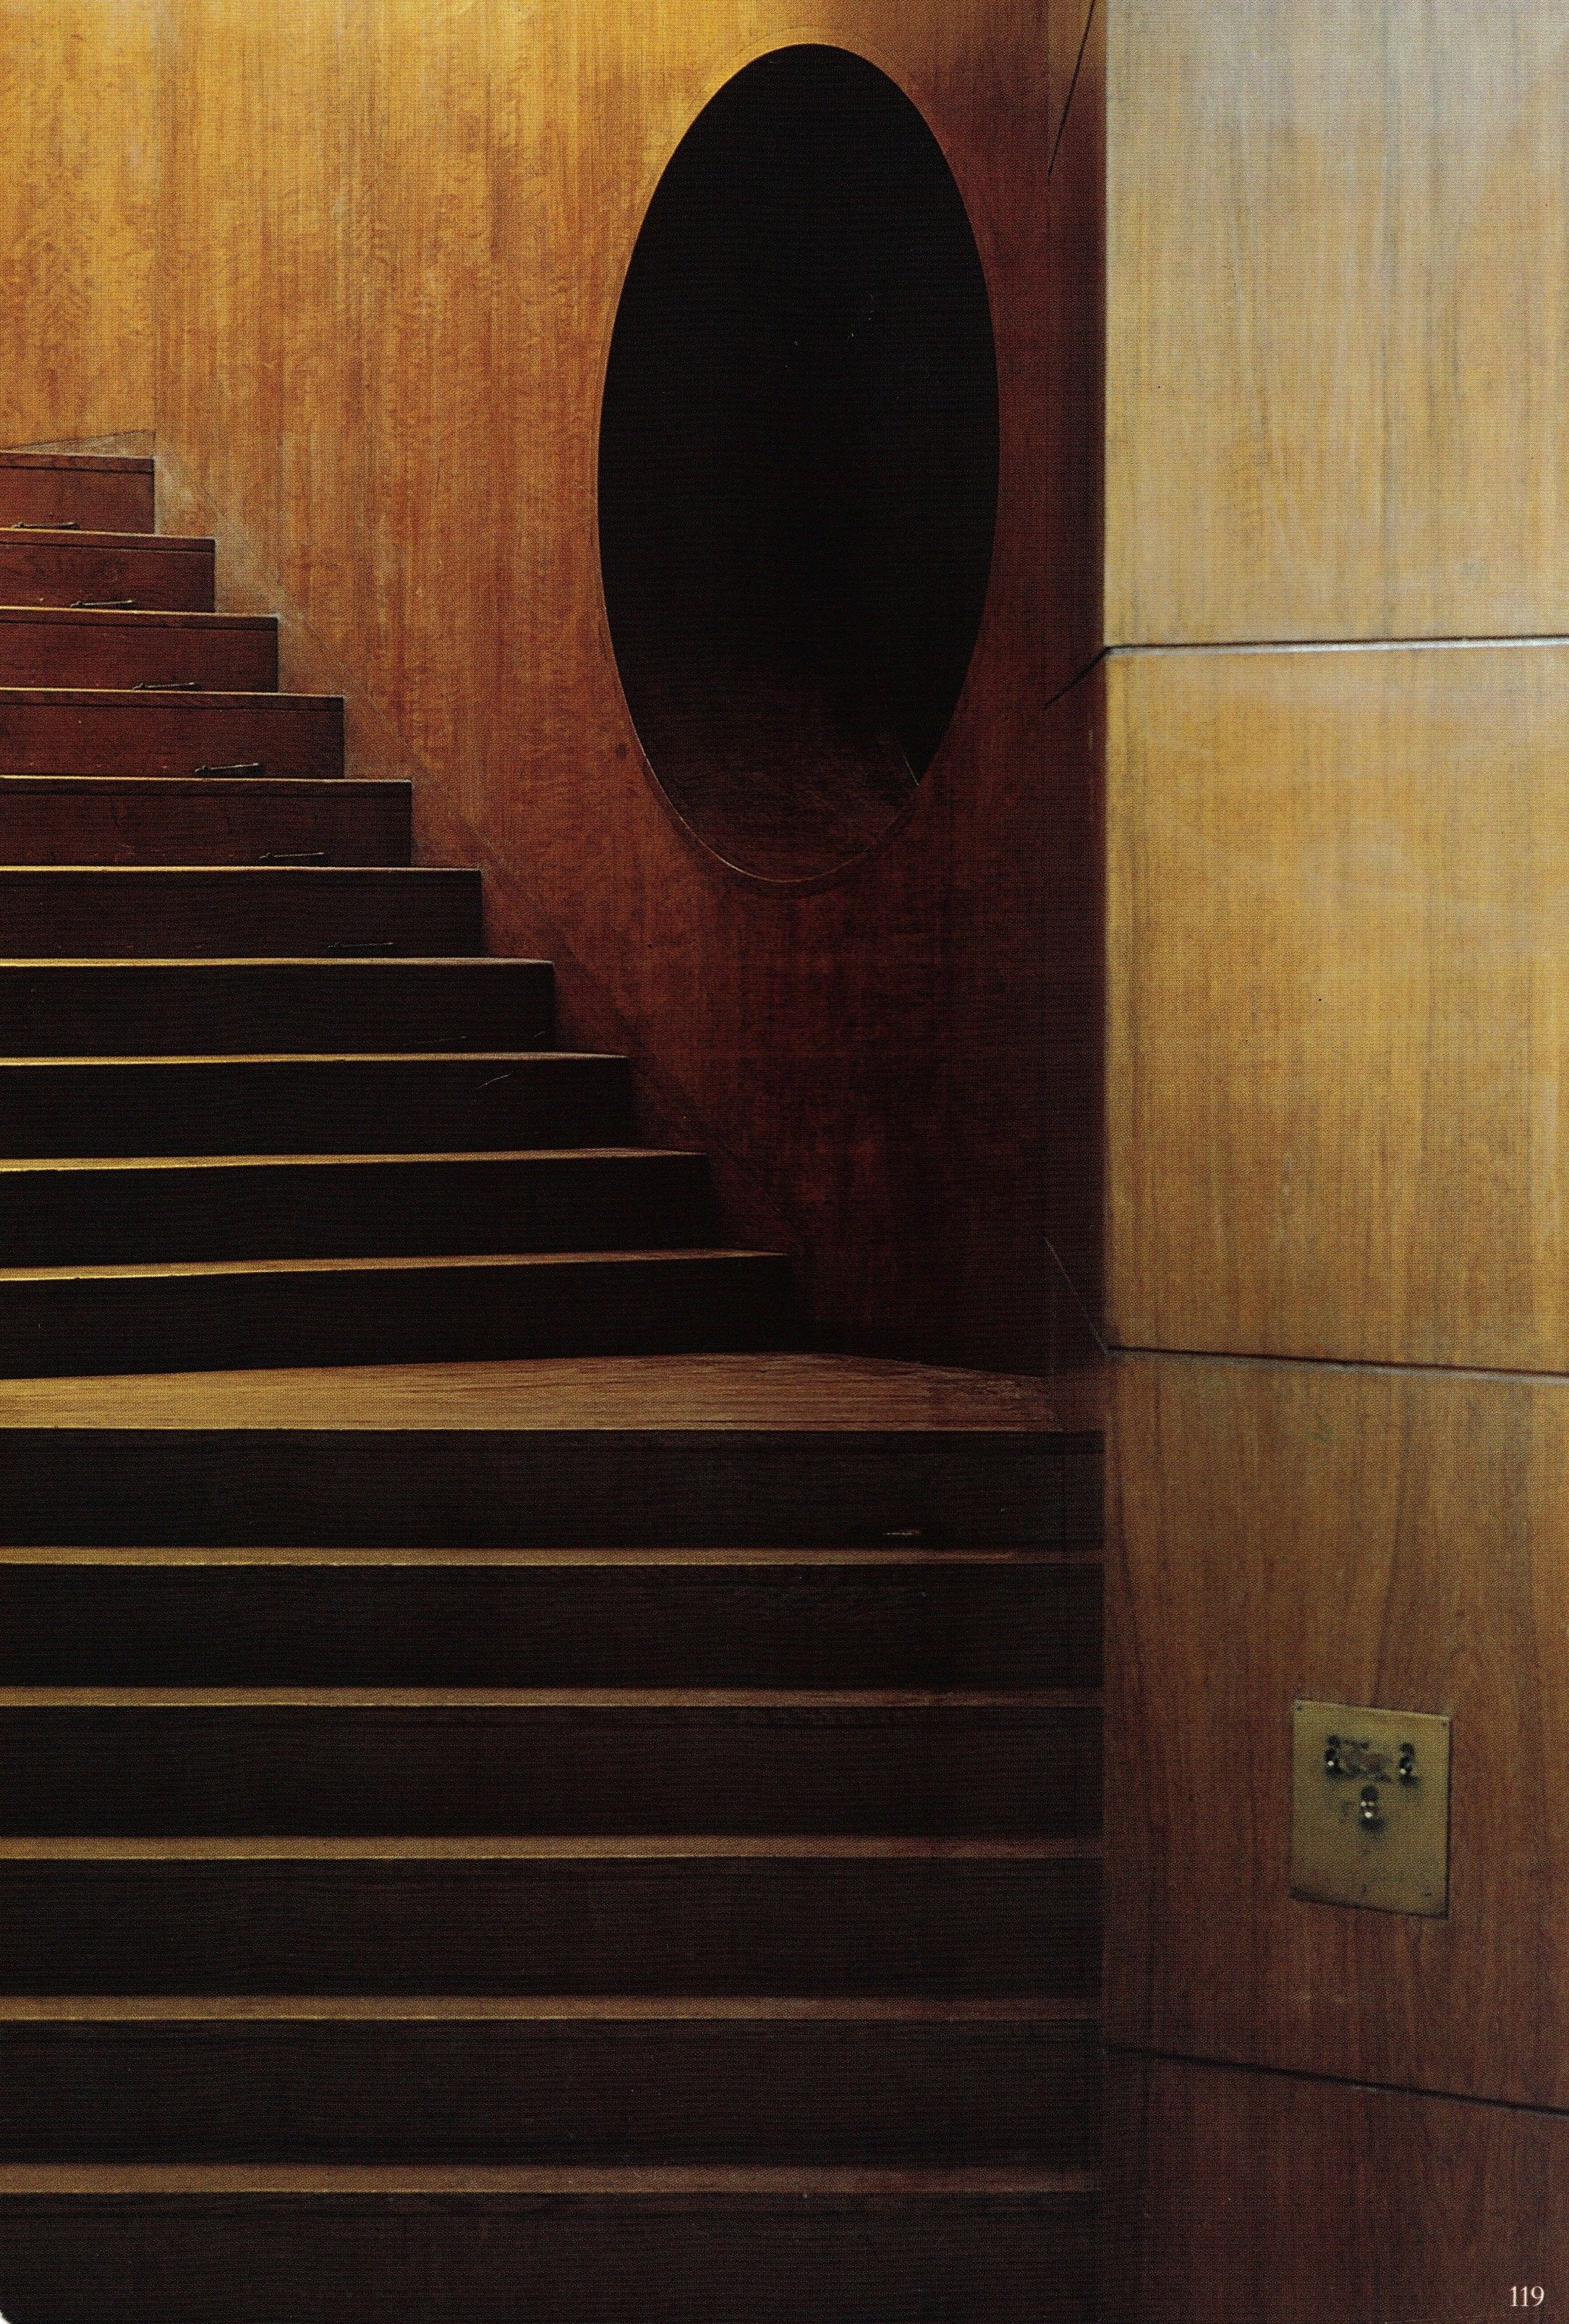 Eltham Palace Art Deco extension, photo of staircase, one of two symmetrical, walls in Australian black bean wood, decorative porthole. From World of Interiors June 1999 http://www.worldofinteriors.co.uk/  see also http://www.english-heritage.org.uk/visit/places/eltham-palace-and-gardens/things-to-do/#Section3